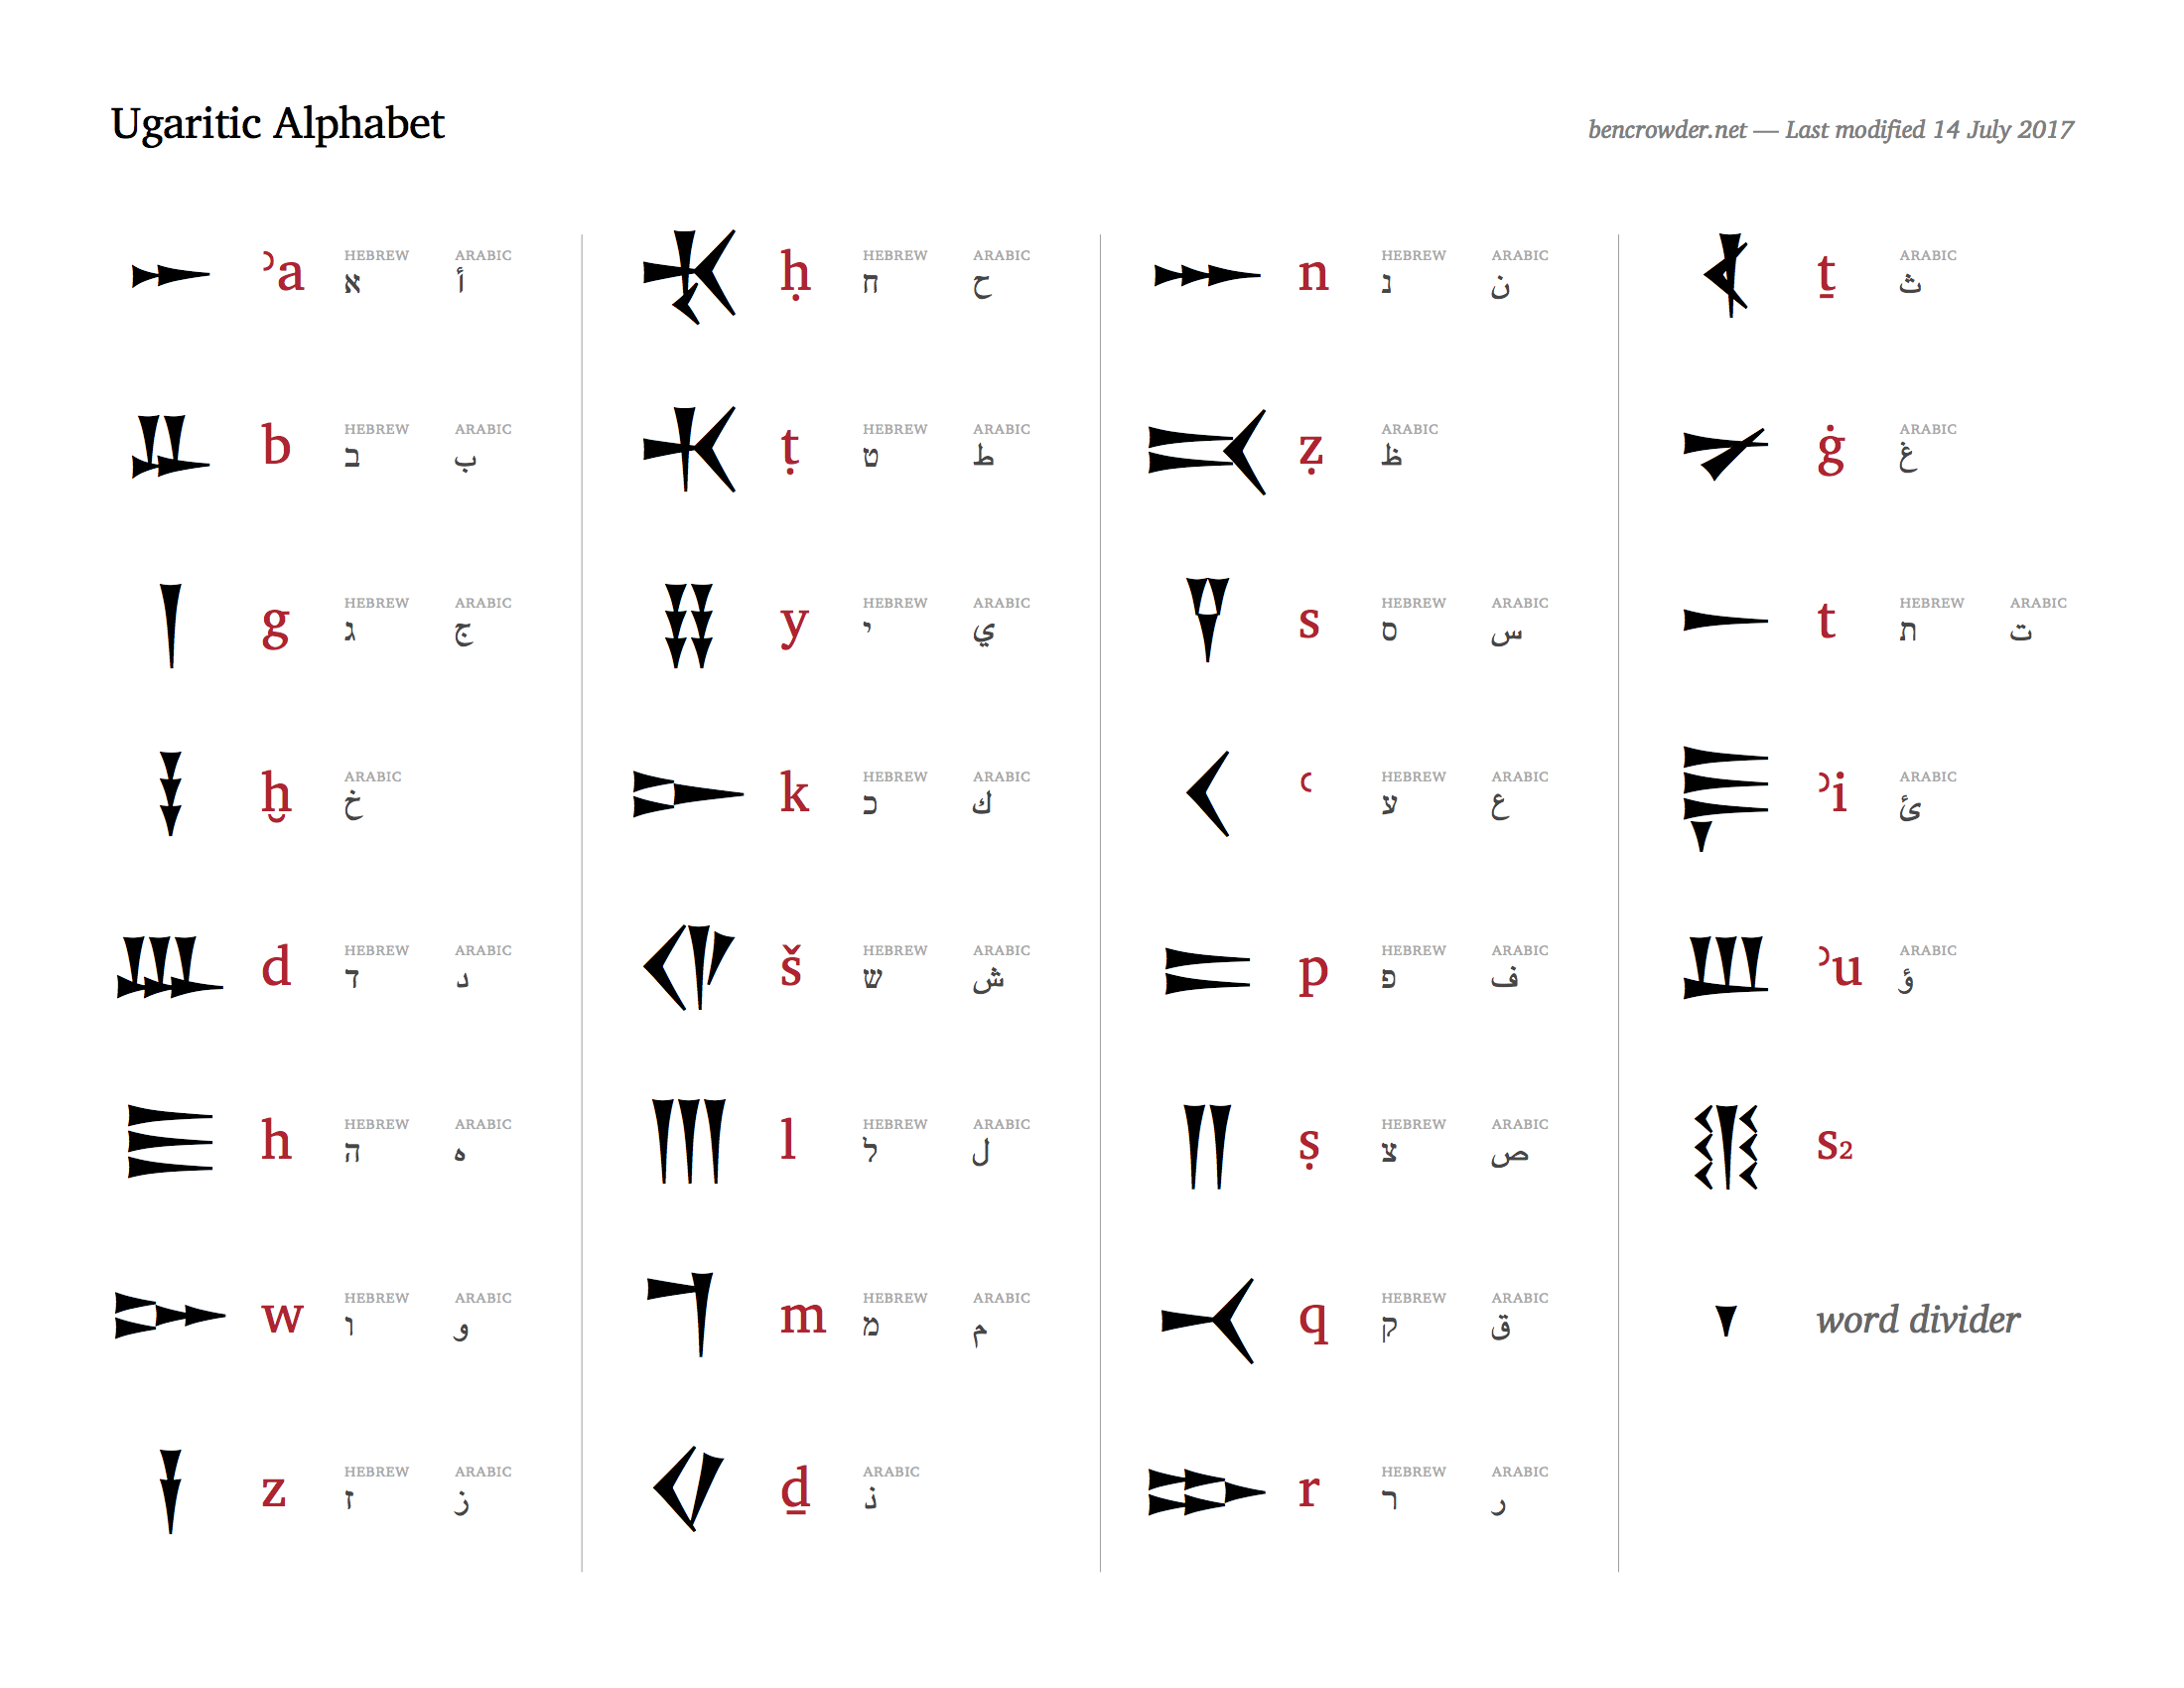 ugaritic-alphabet.png